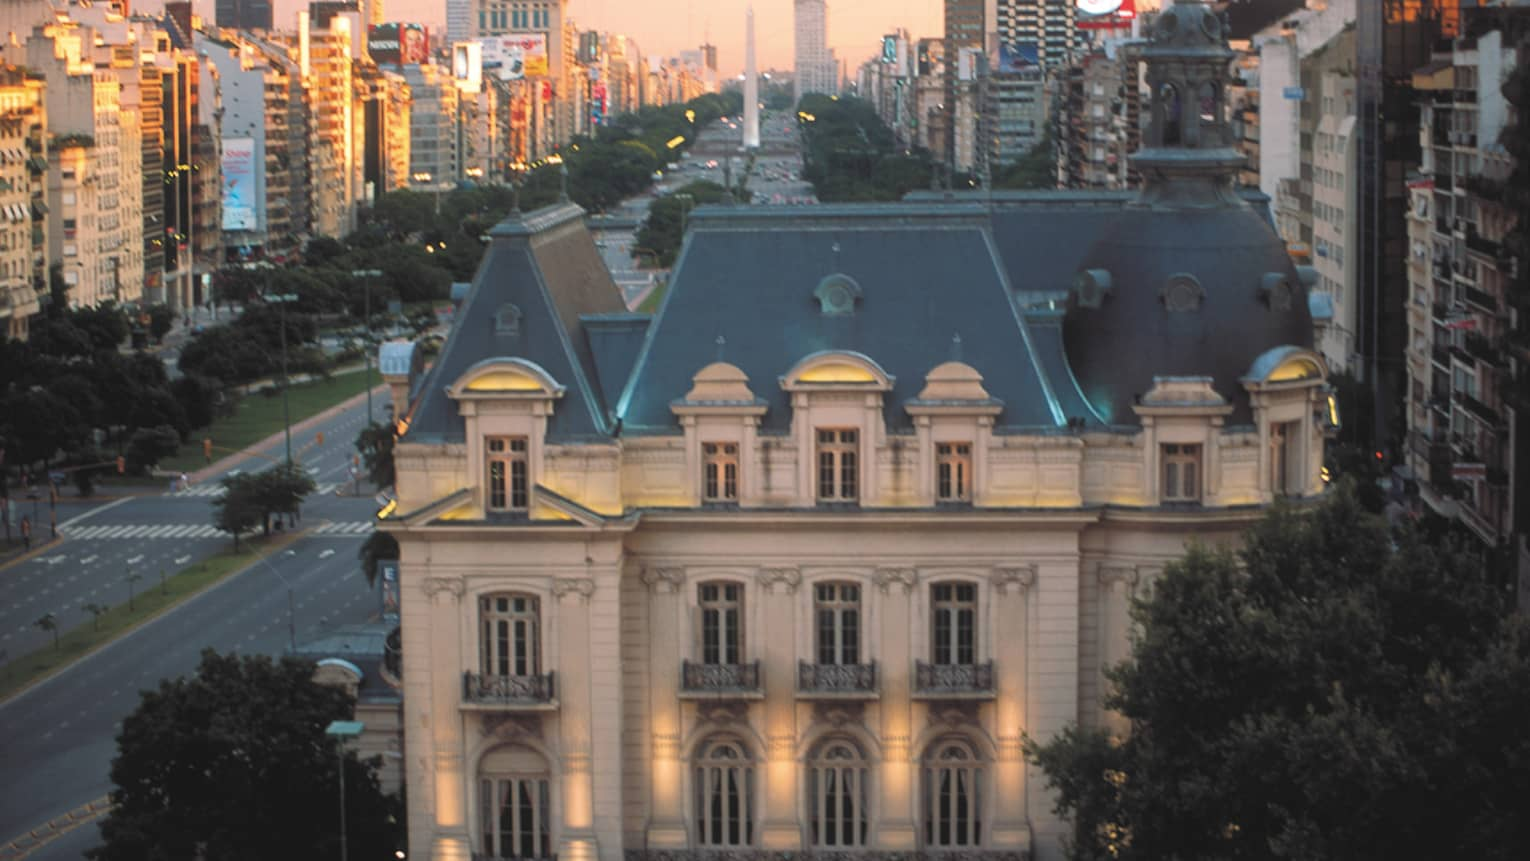 View of surrounding neighbourhood. Hotel Mansion in foreground.